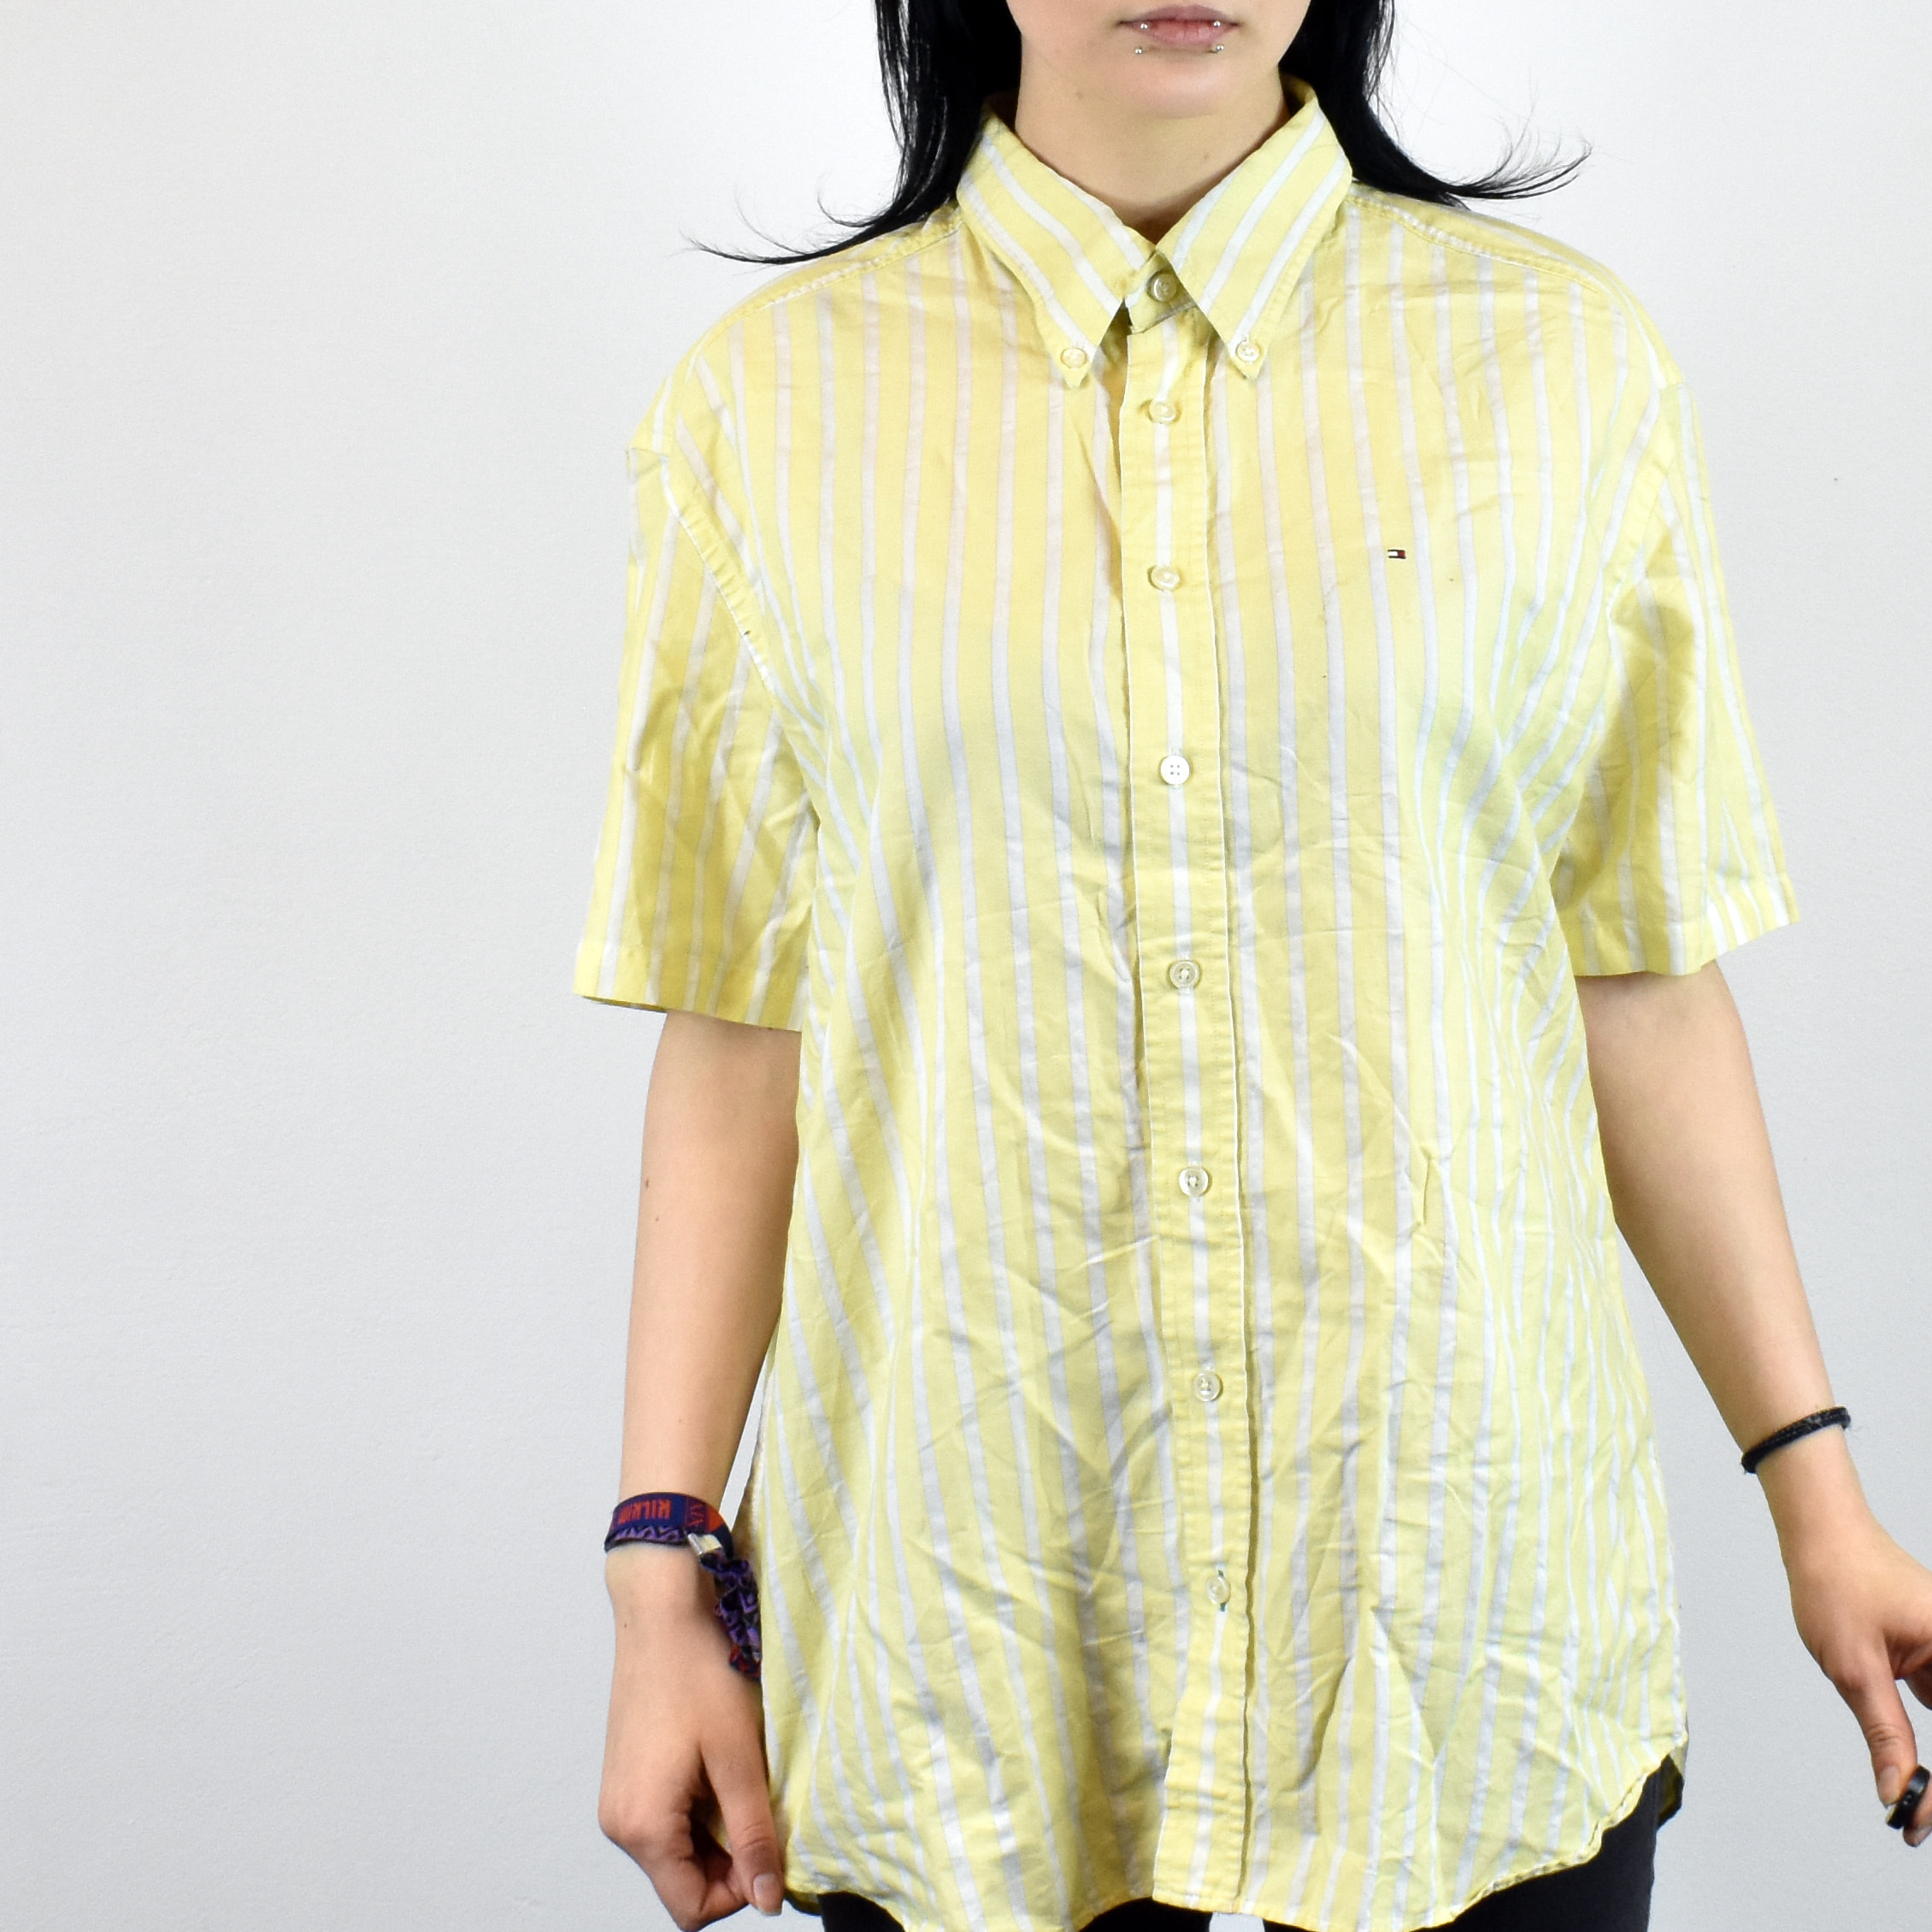 6ff33c08 Vintage Tommy Hilfiger striped shirt in yellow and white size M